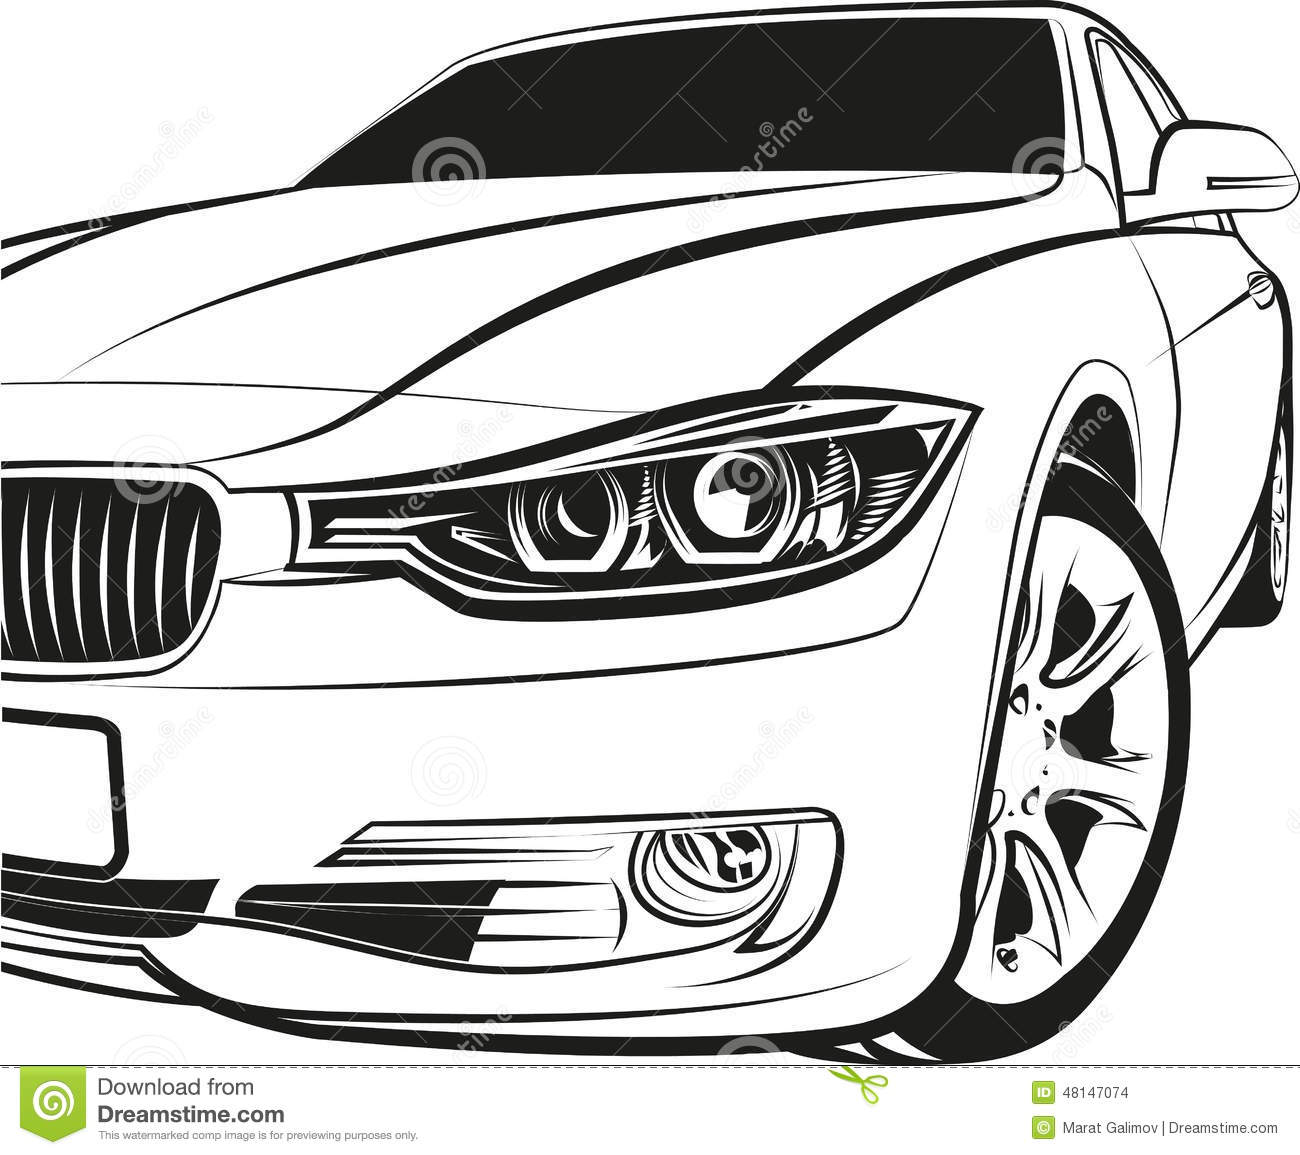 Car Coupe Stock Vector Illustration Of Over Illustration